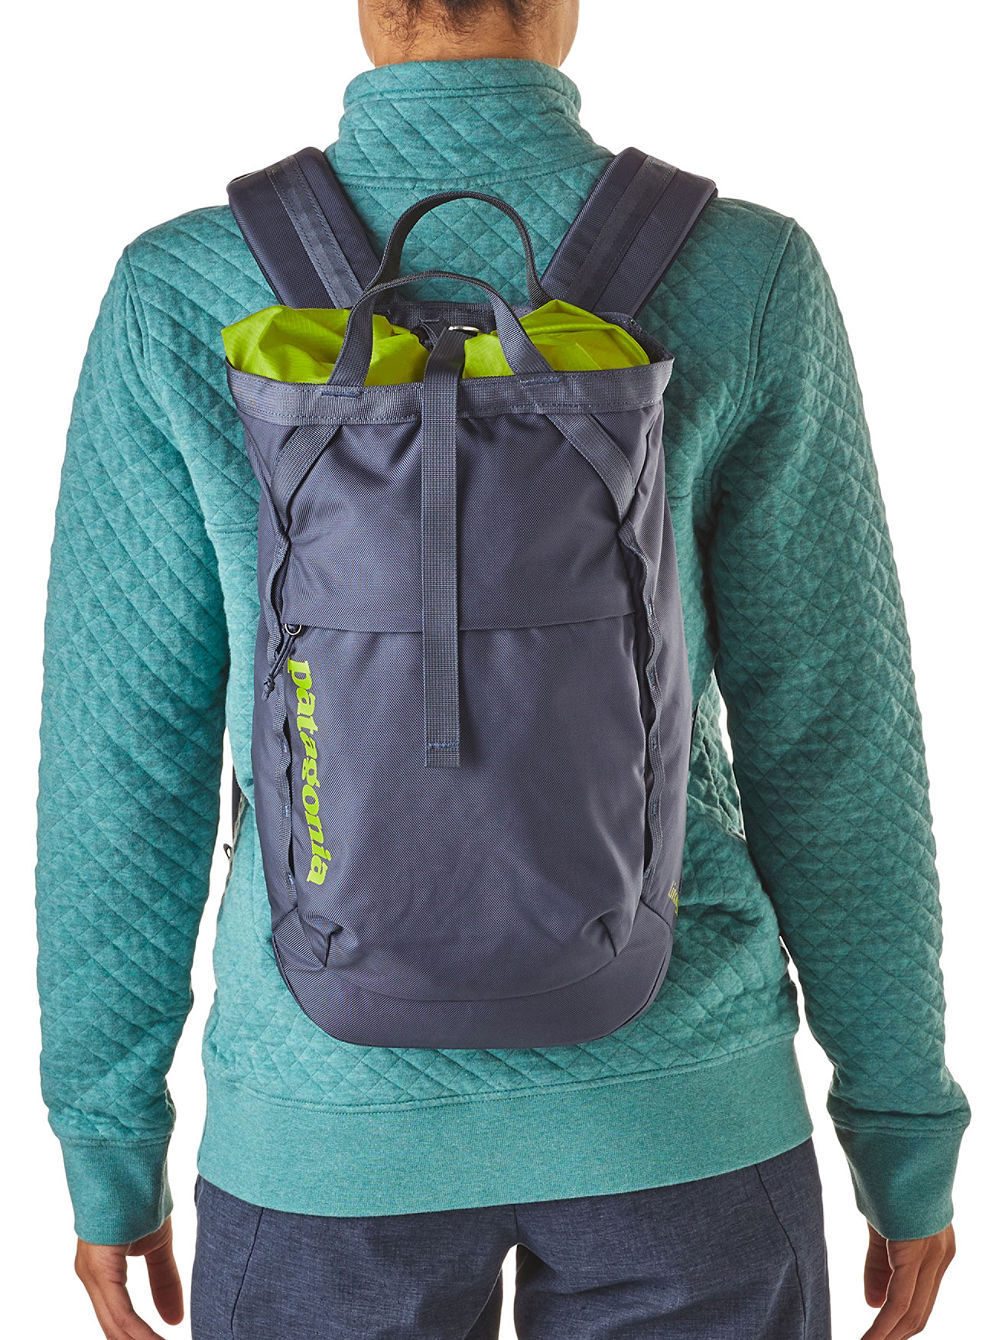 Linked 18L Backpack